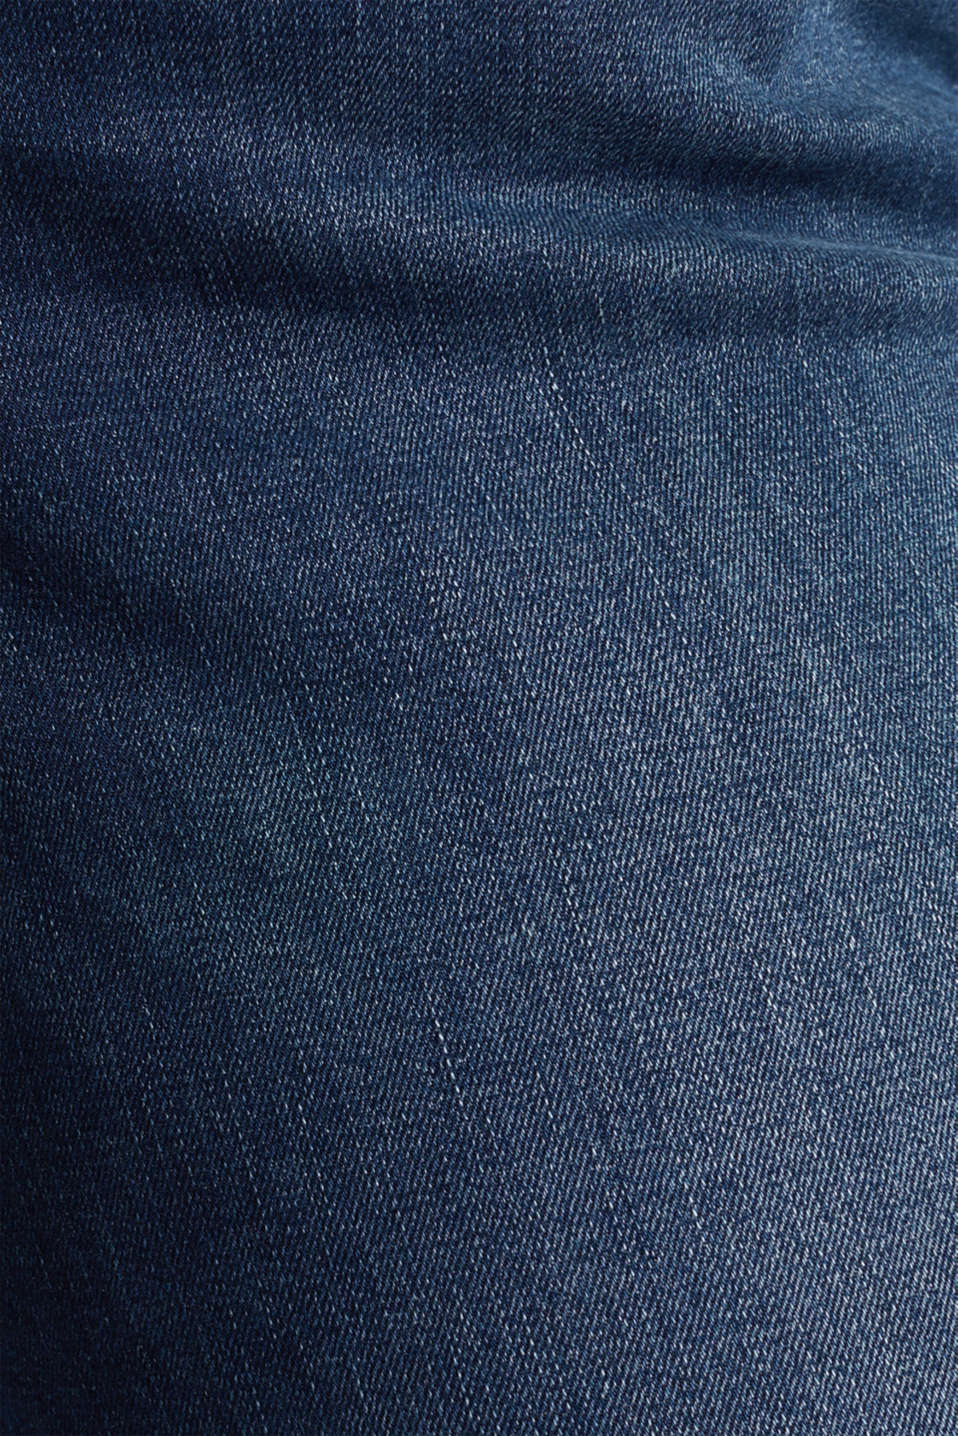 CURVY basic jeans with stretch, BLUE DARK WASH, detail image number 4